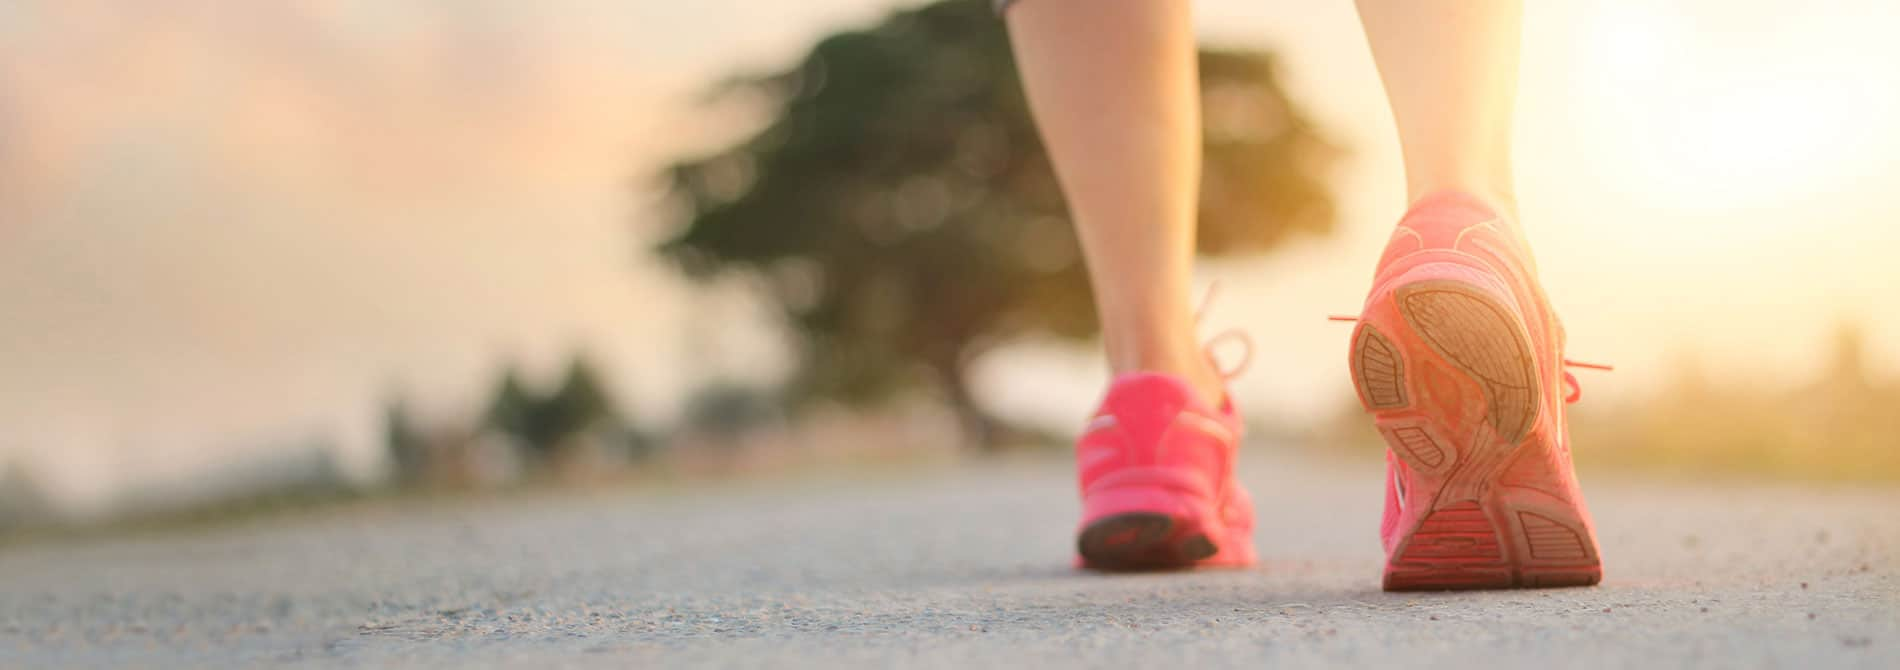 One Step at a Time: The Benefits of Exercise in Recovery